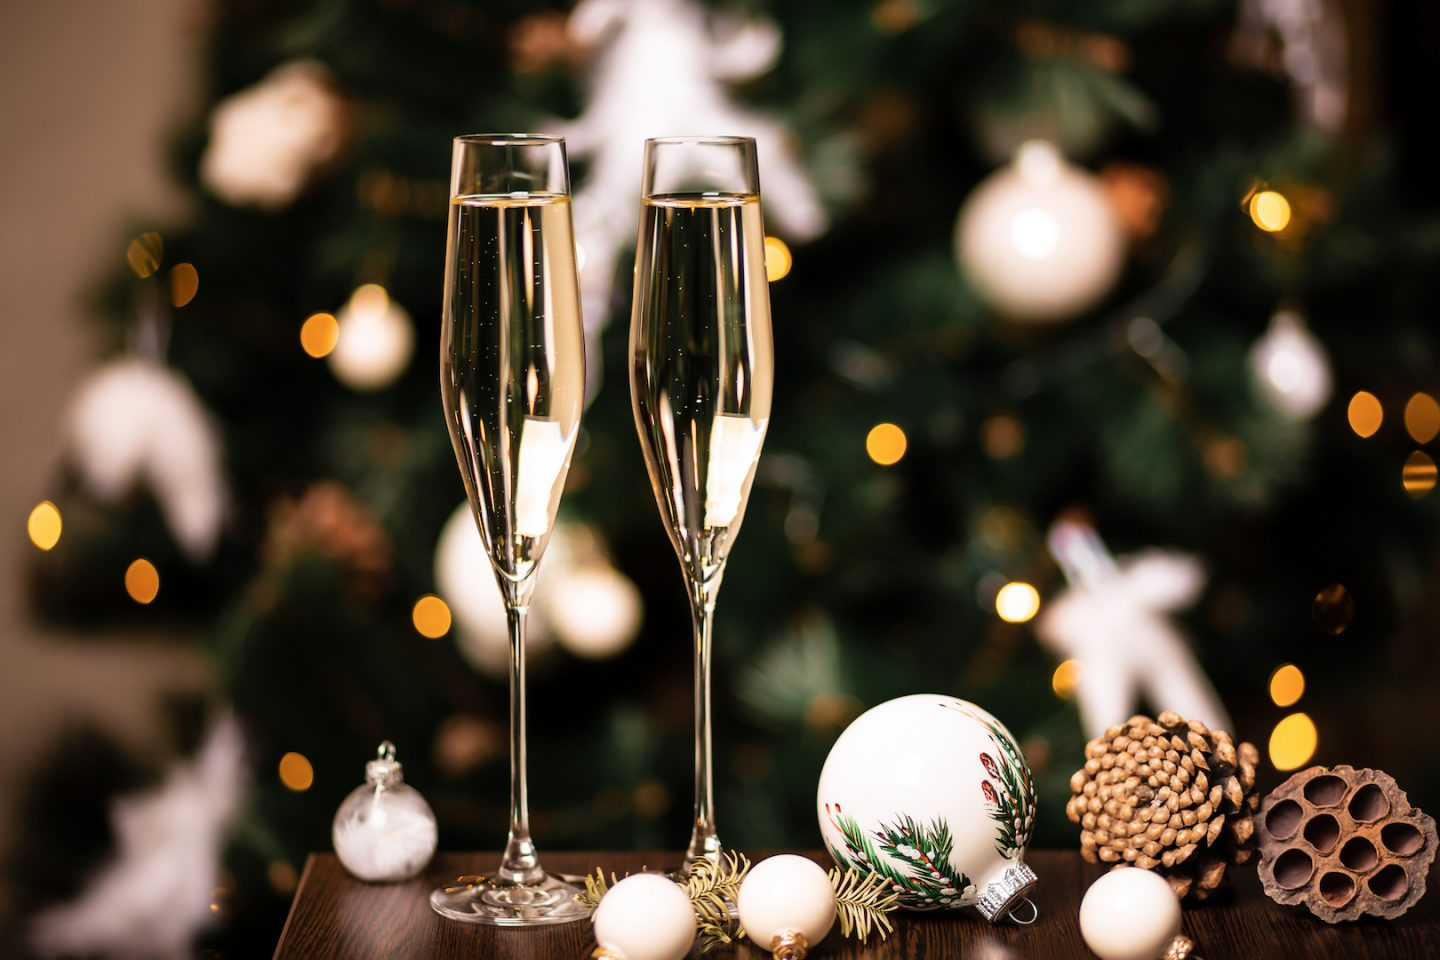 New Year Champagne Christmas Composition With Champagne In Interior And White Christmas Tree Decorations Bokeh Garland Lights And Holiday Atmosphere Hashtag Life